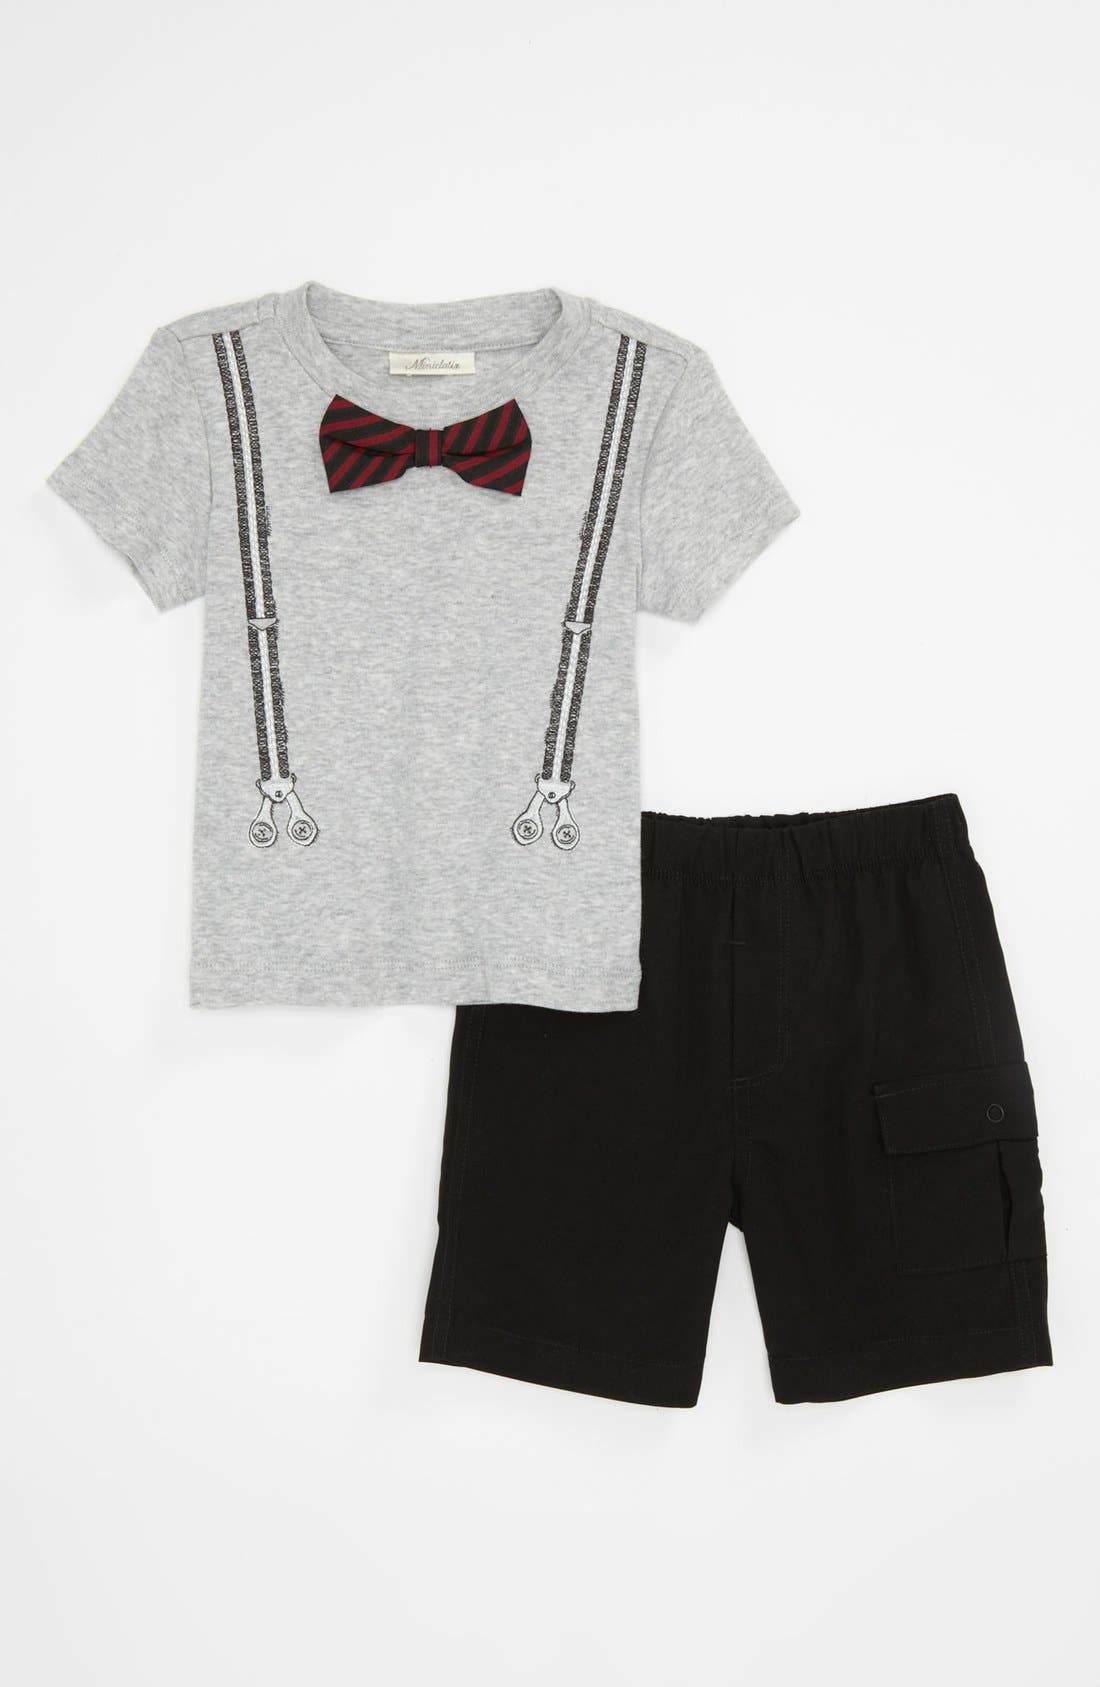 Alternate Image 1 Selected - Miniclasix Bow Tie T-Shirt & Pants (Baby)